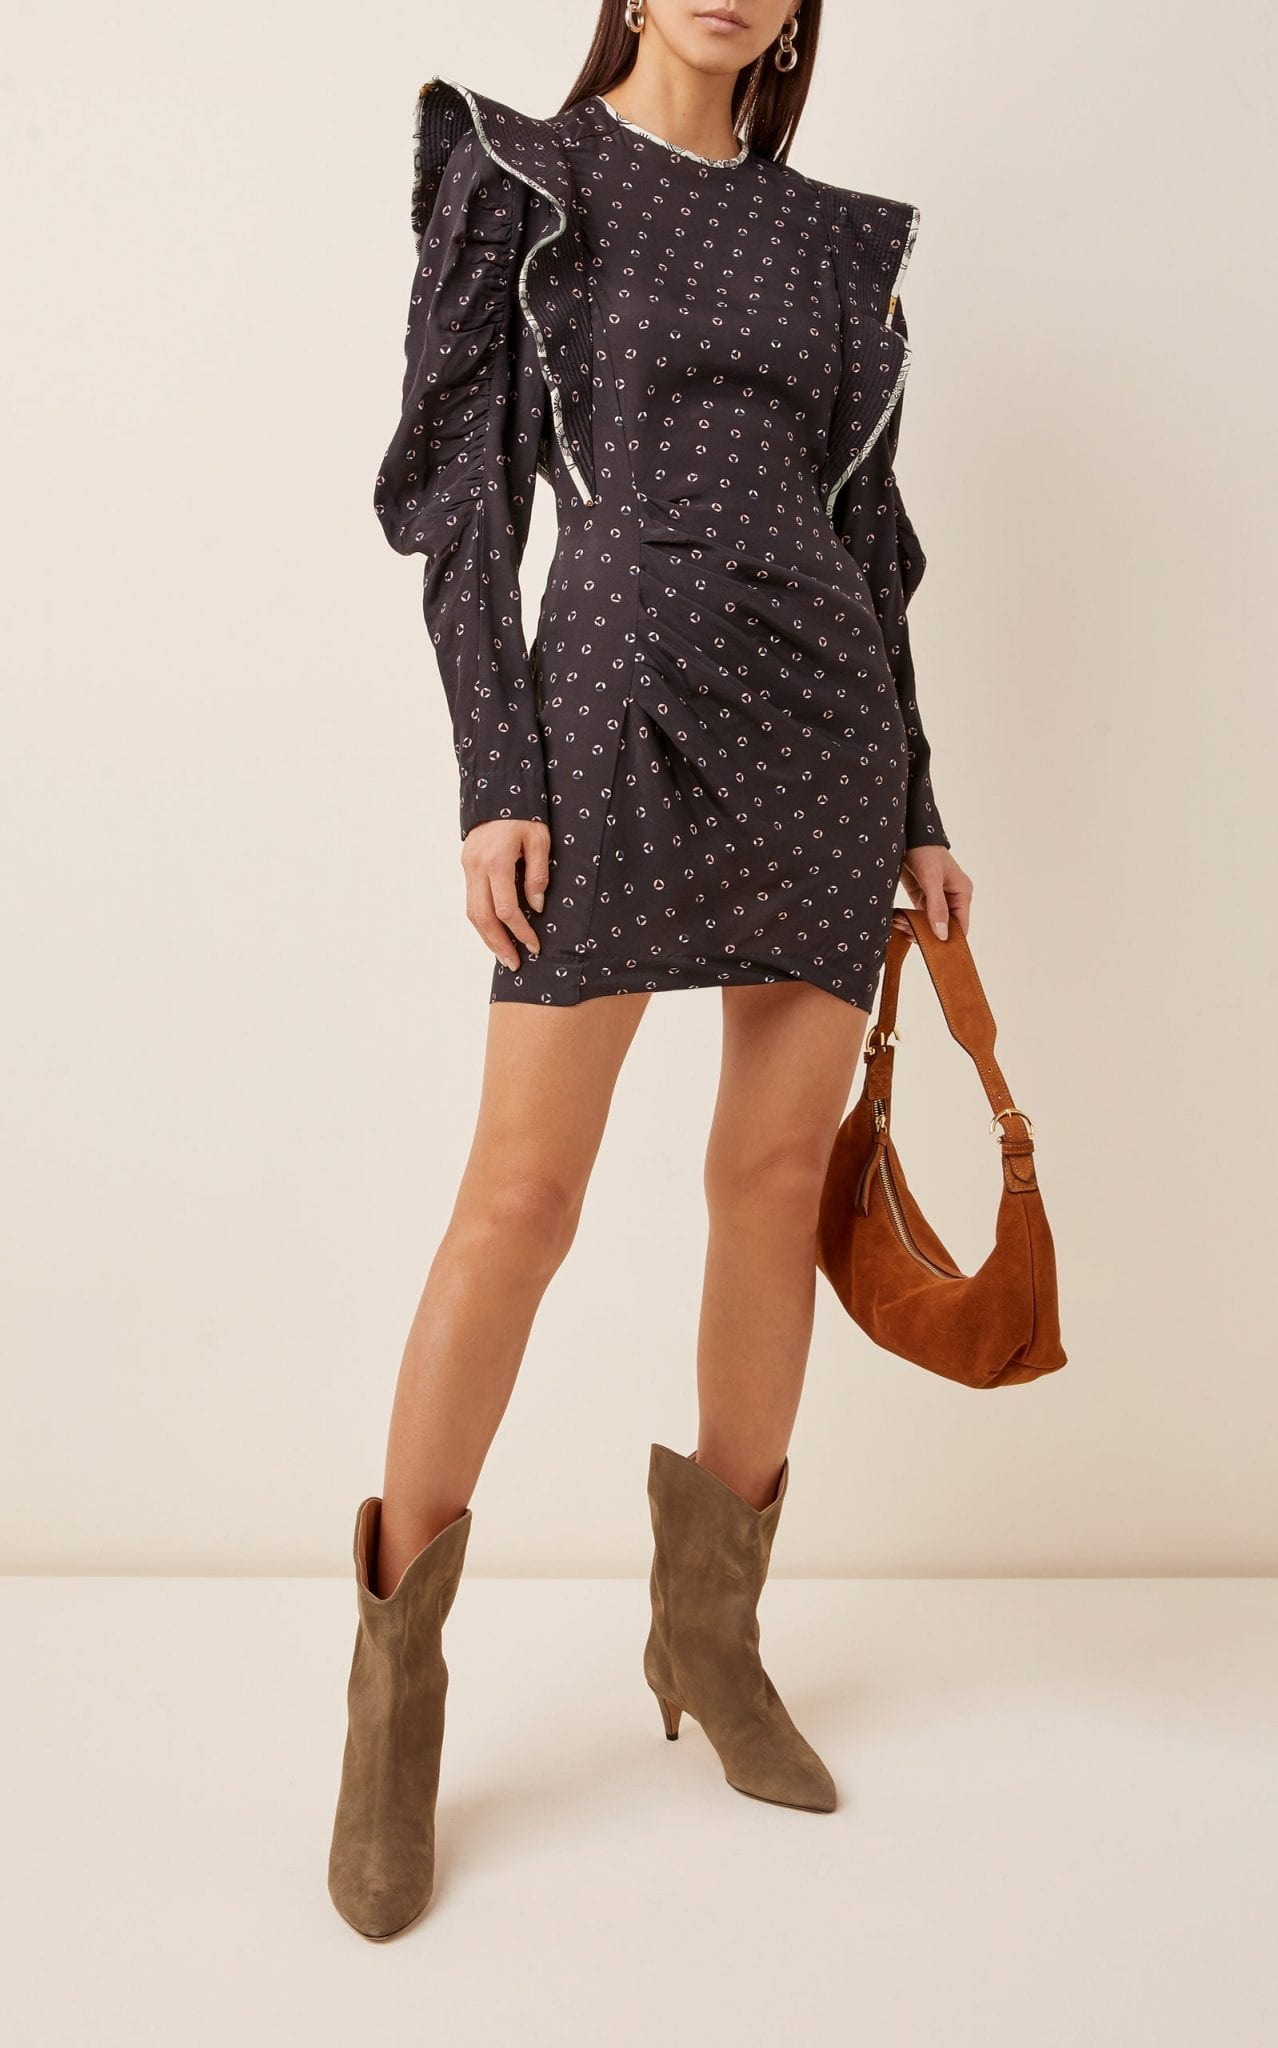 ISABEL MARANT ÉTOILE Catarina Floral Poplin Dress